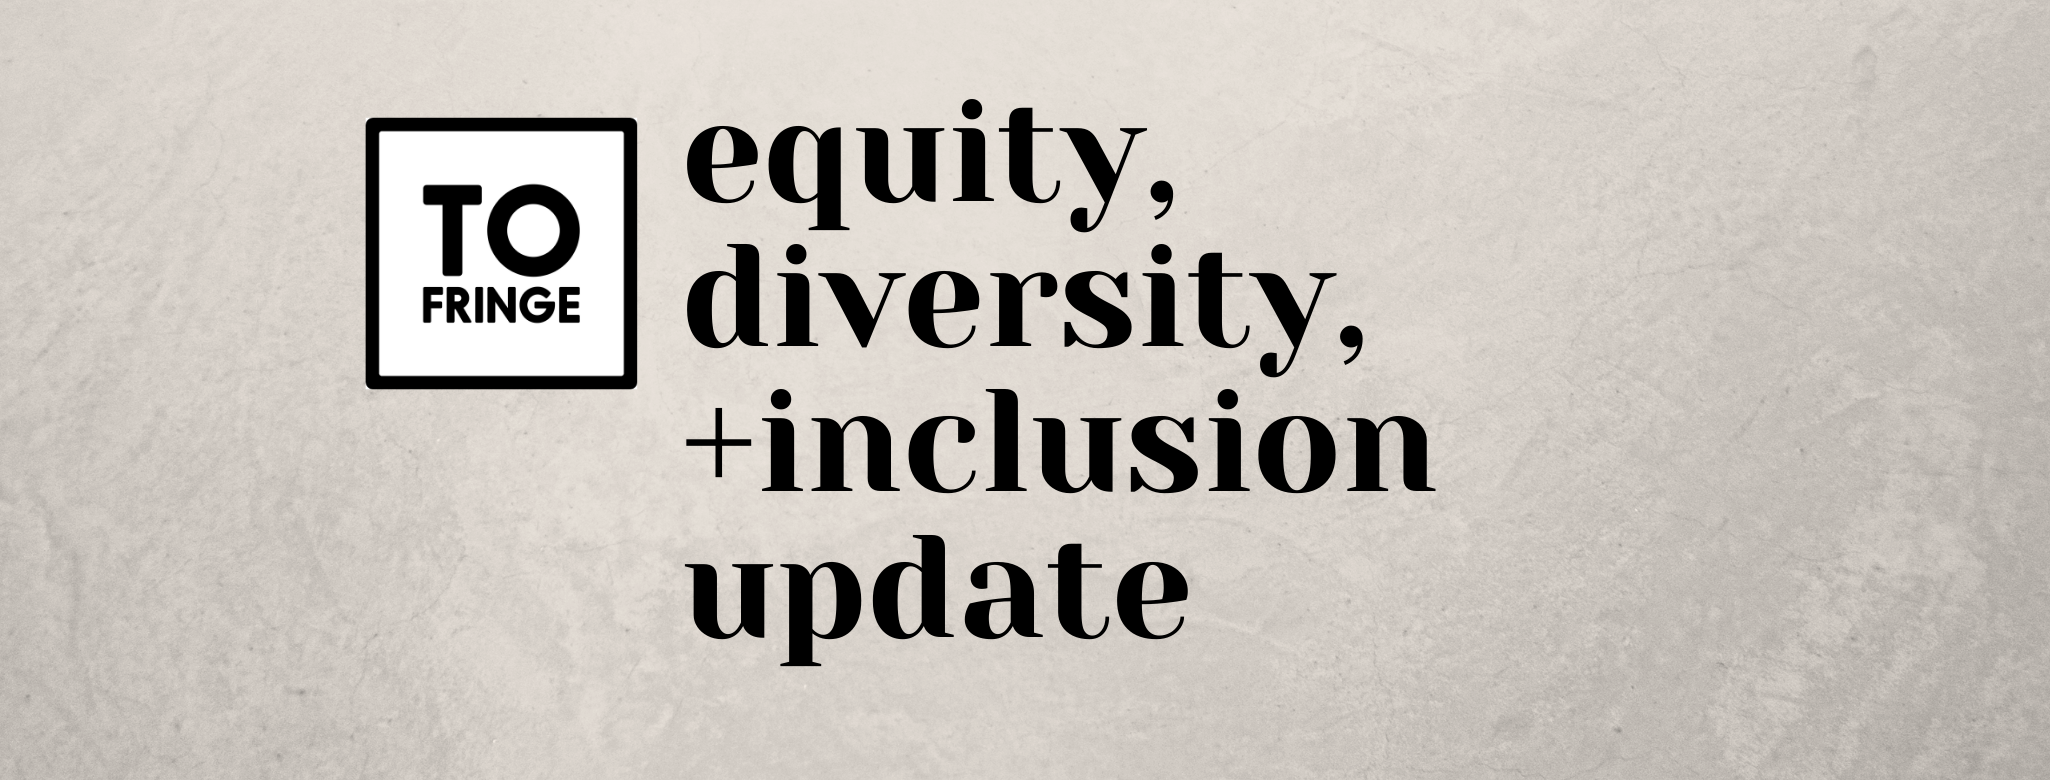 Equity, Diversity, and Inclusion Audit